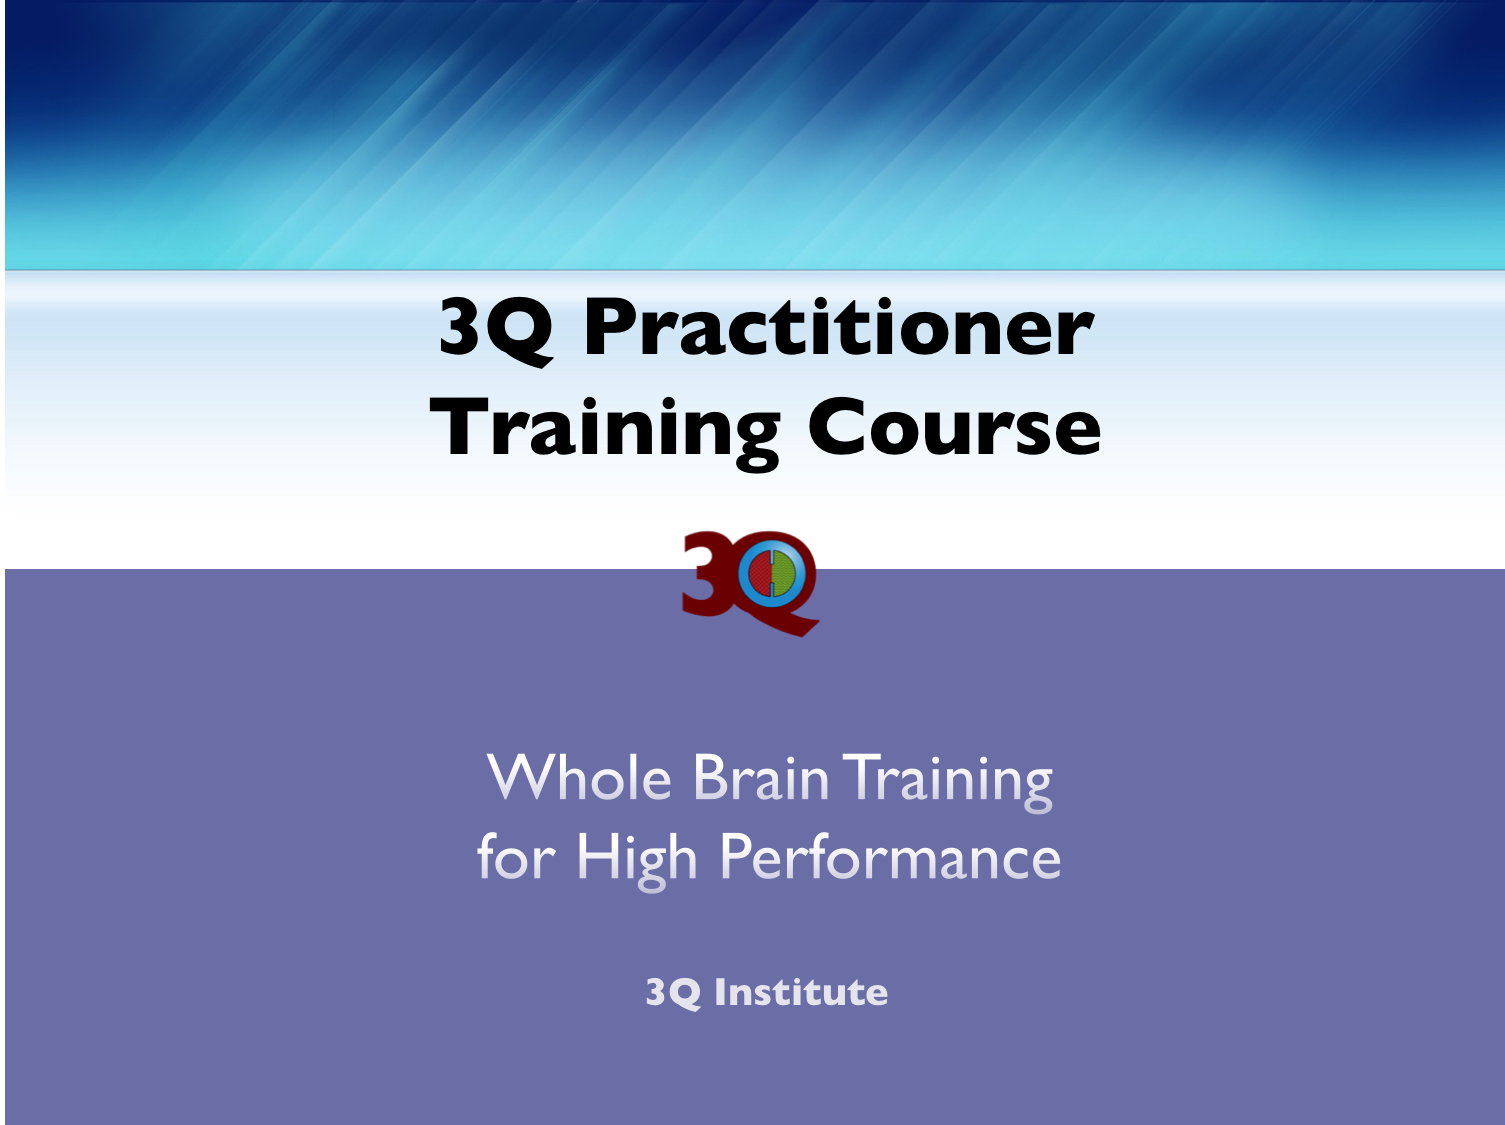 3Q Practitioner Training and Certification Course